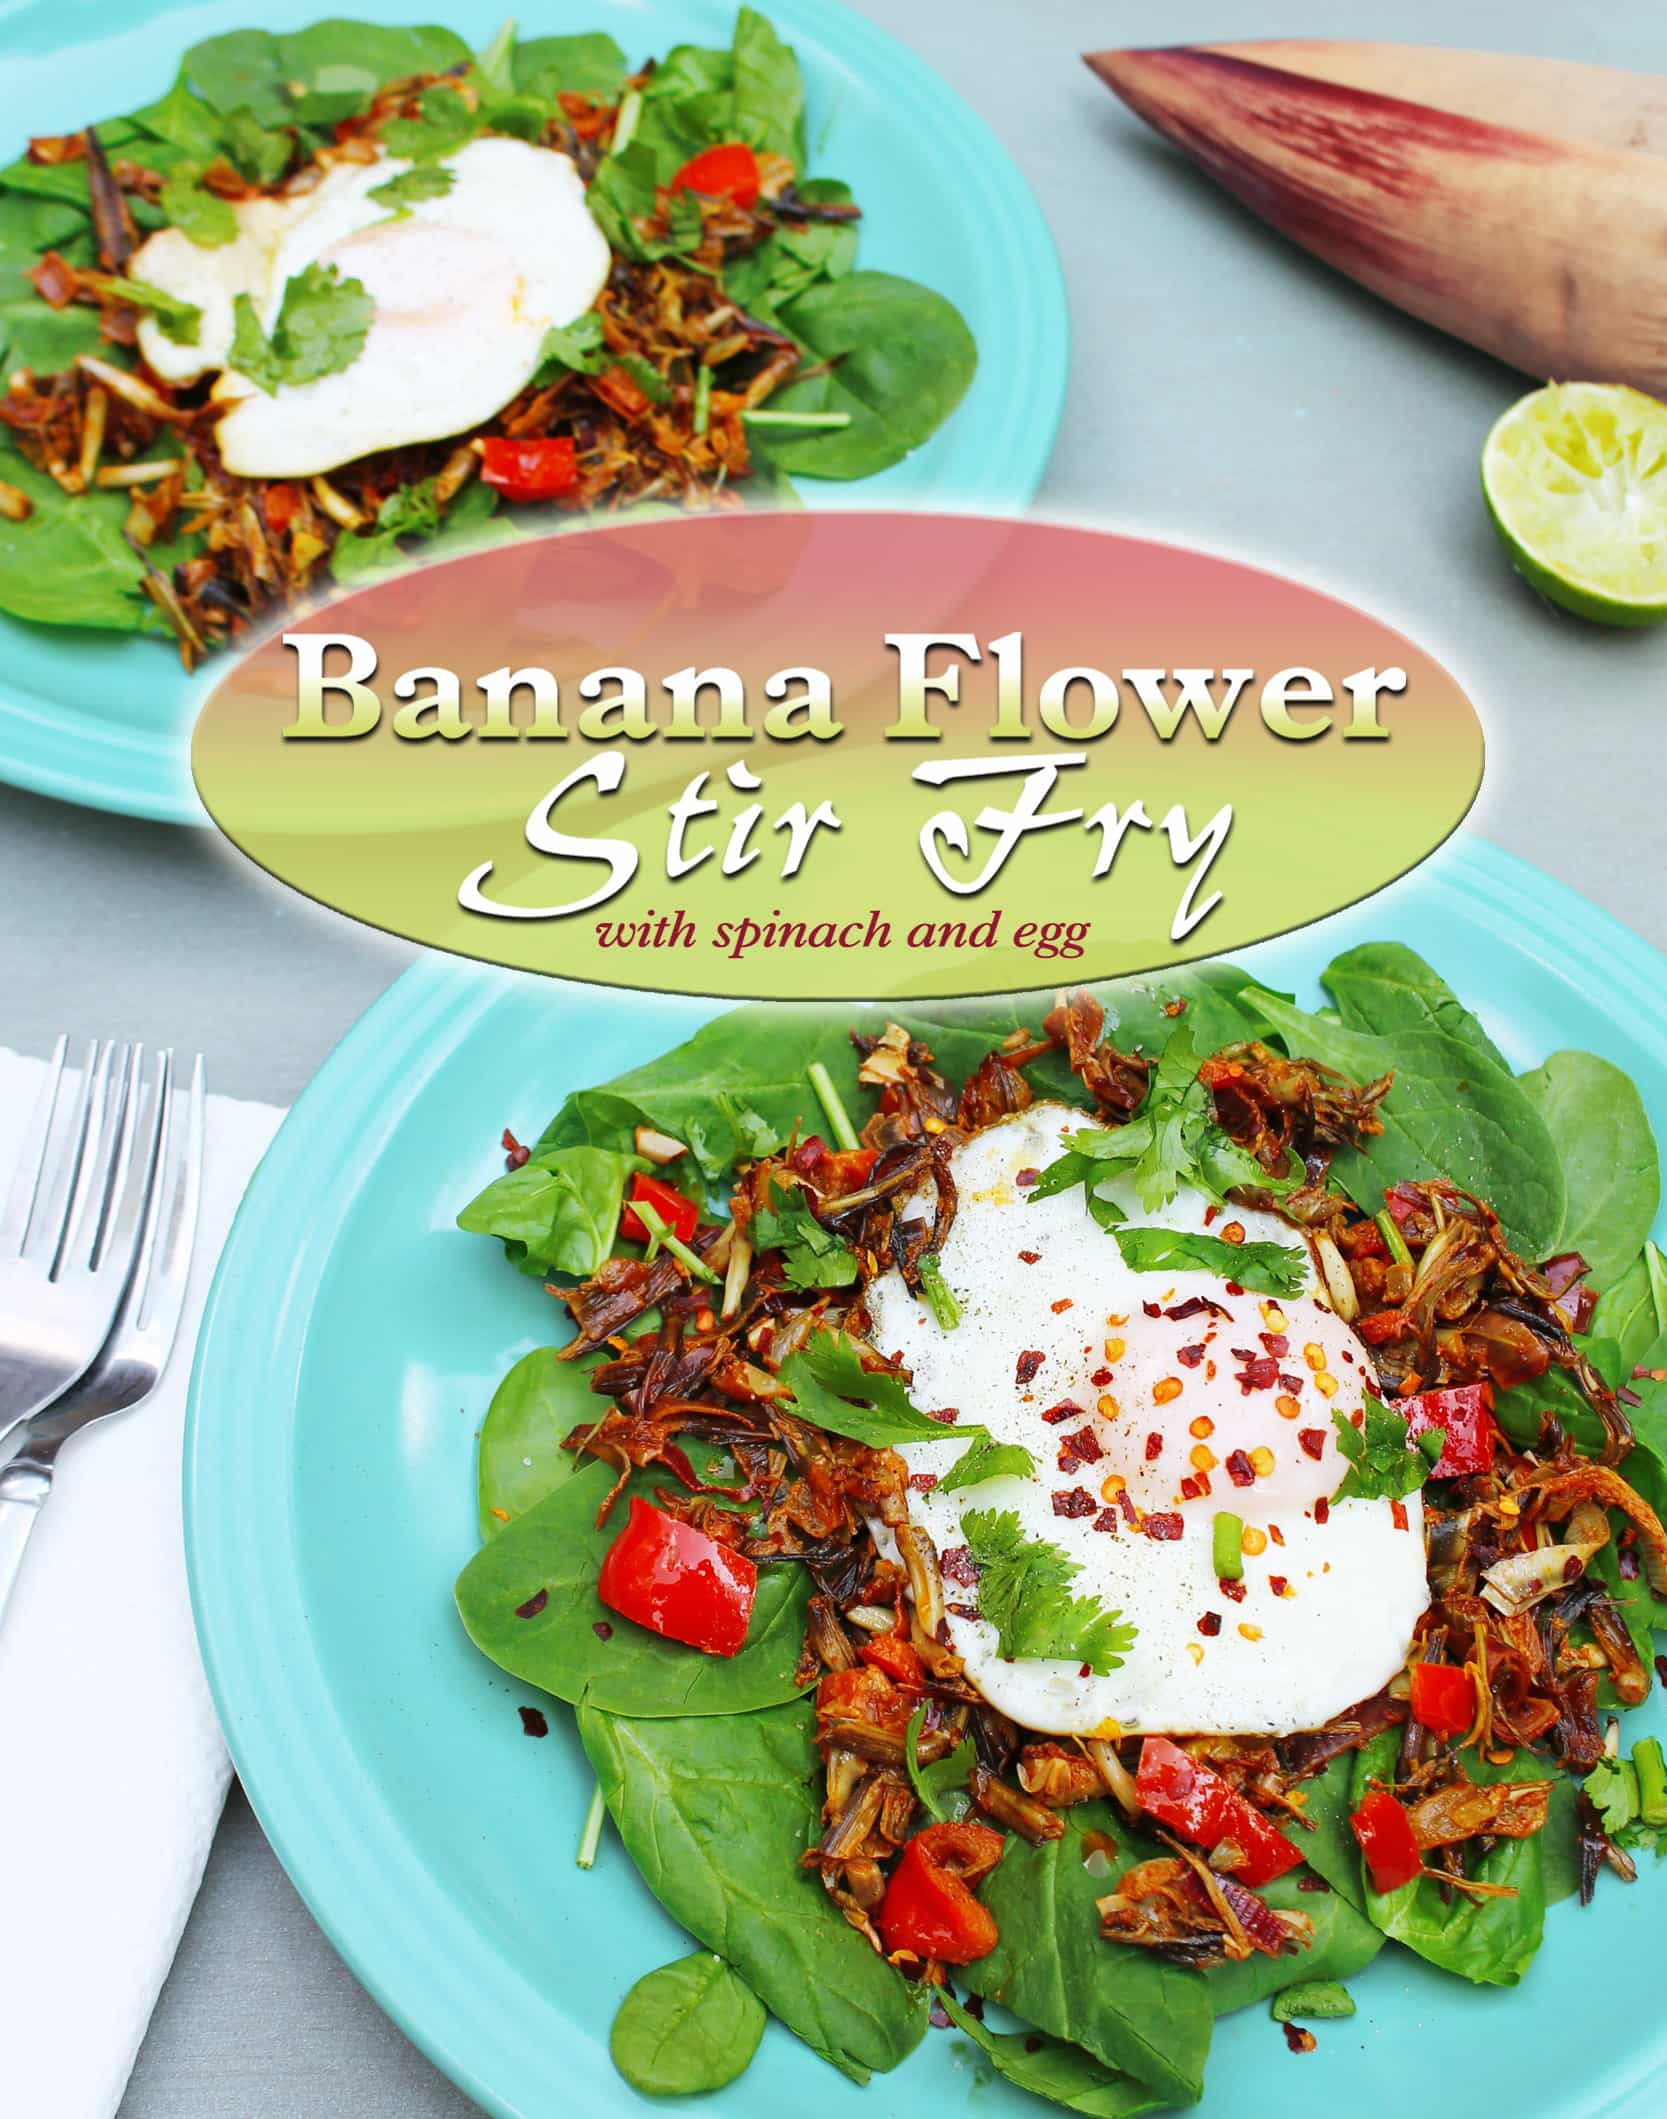 banana flower stir fry served with salad